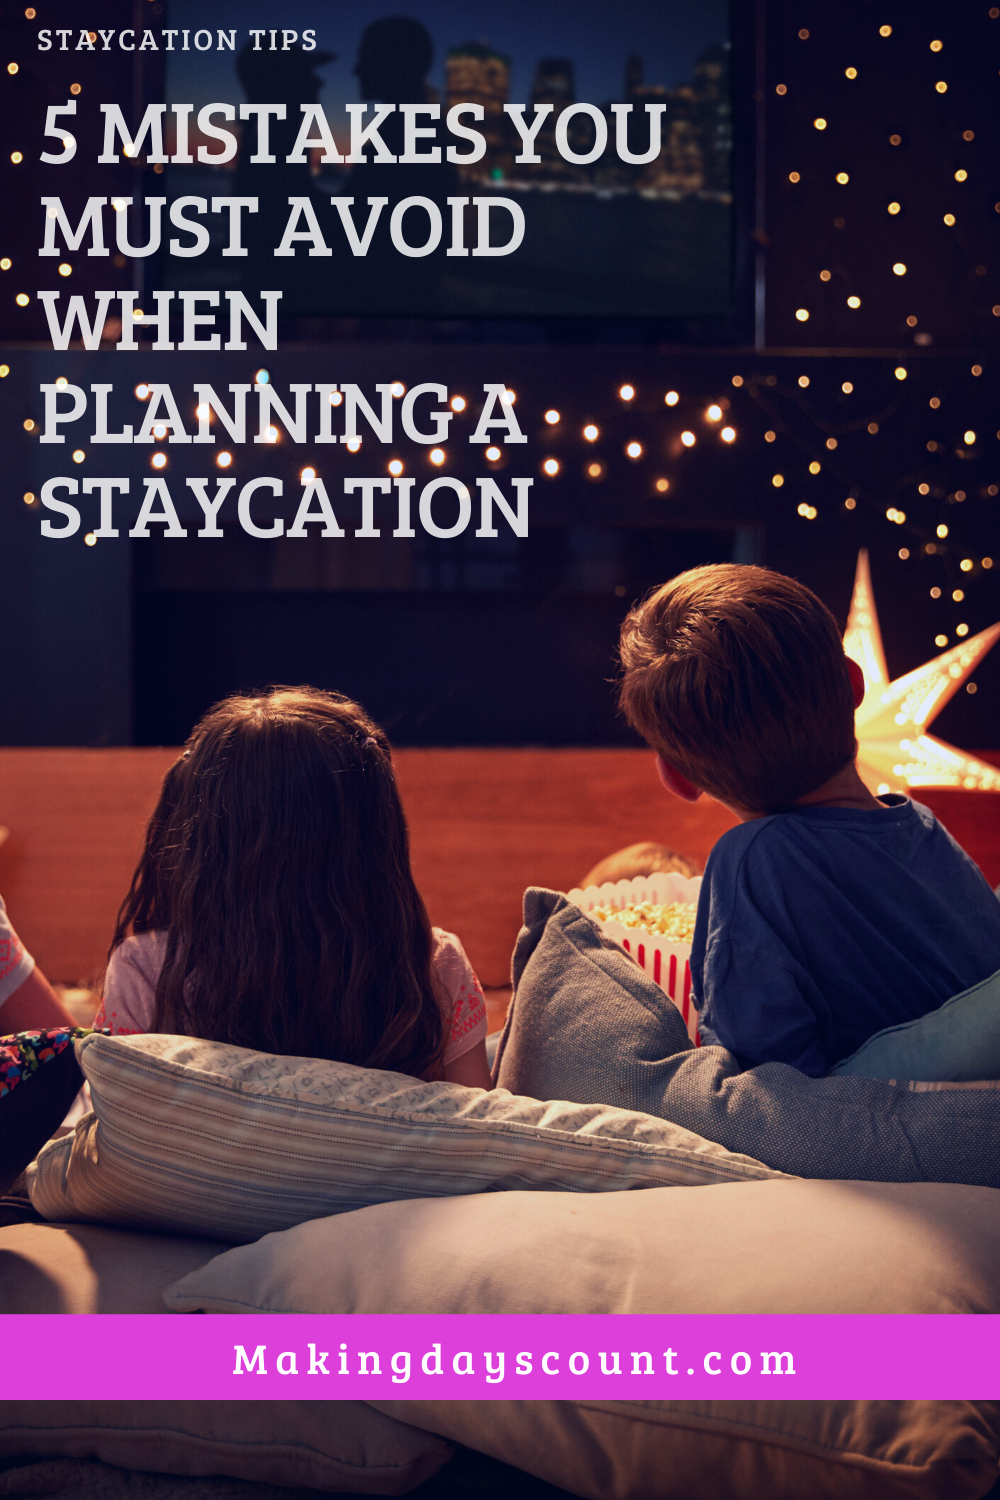 staycation mistakes to avoid